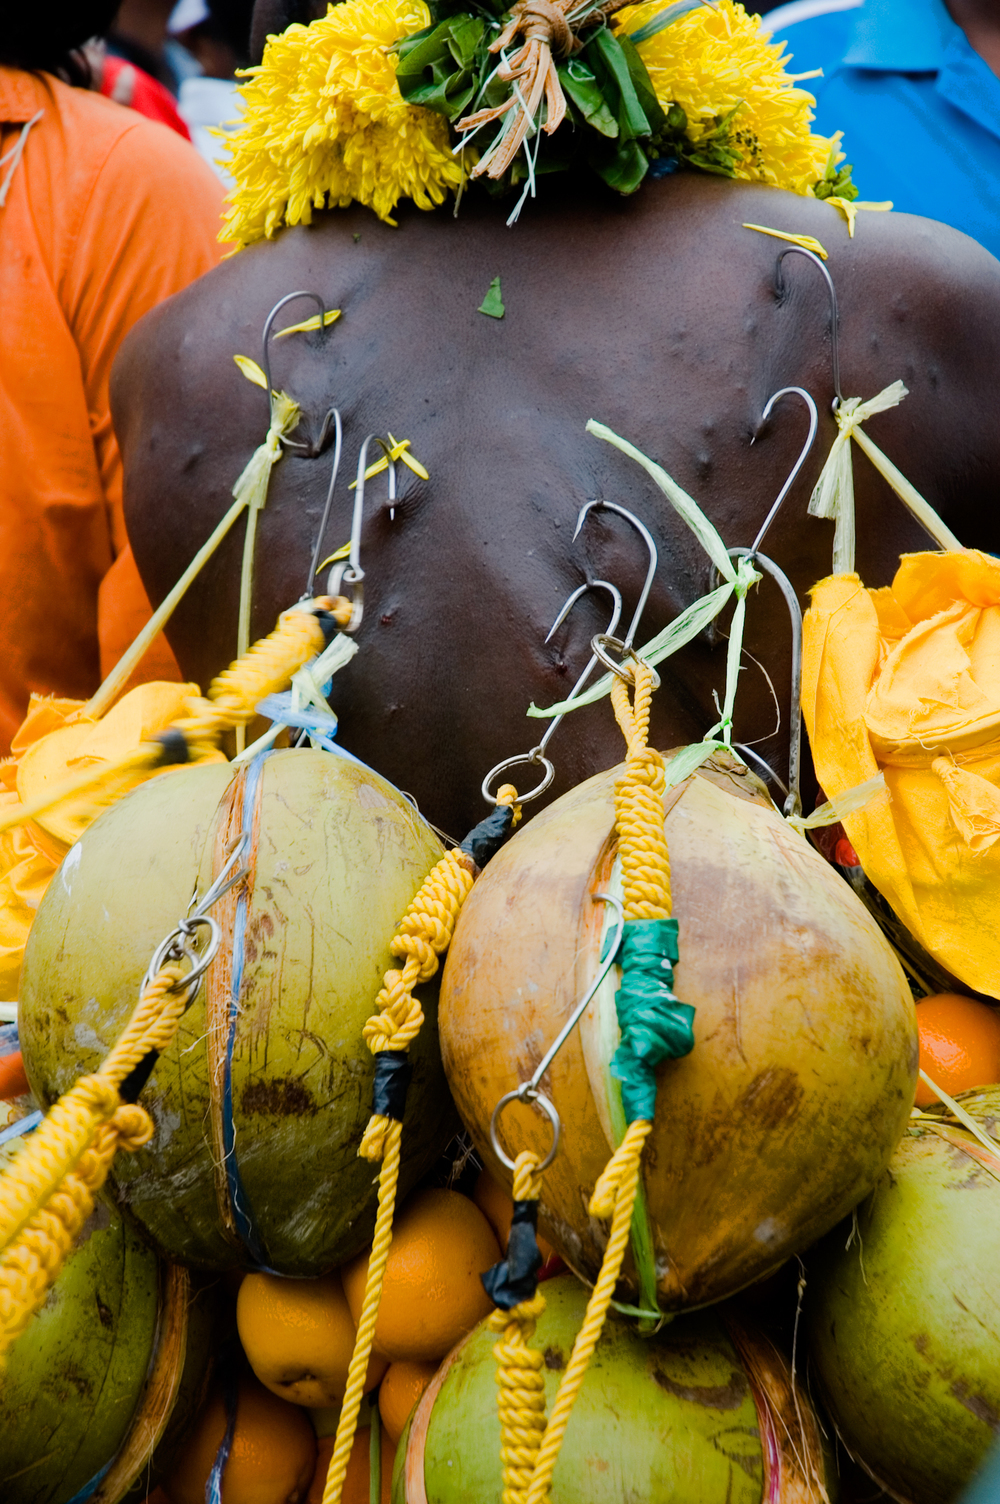 wb_thaipusam_back_fruit.jpg